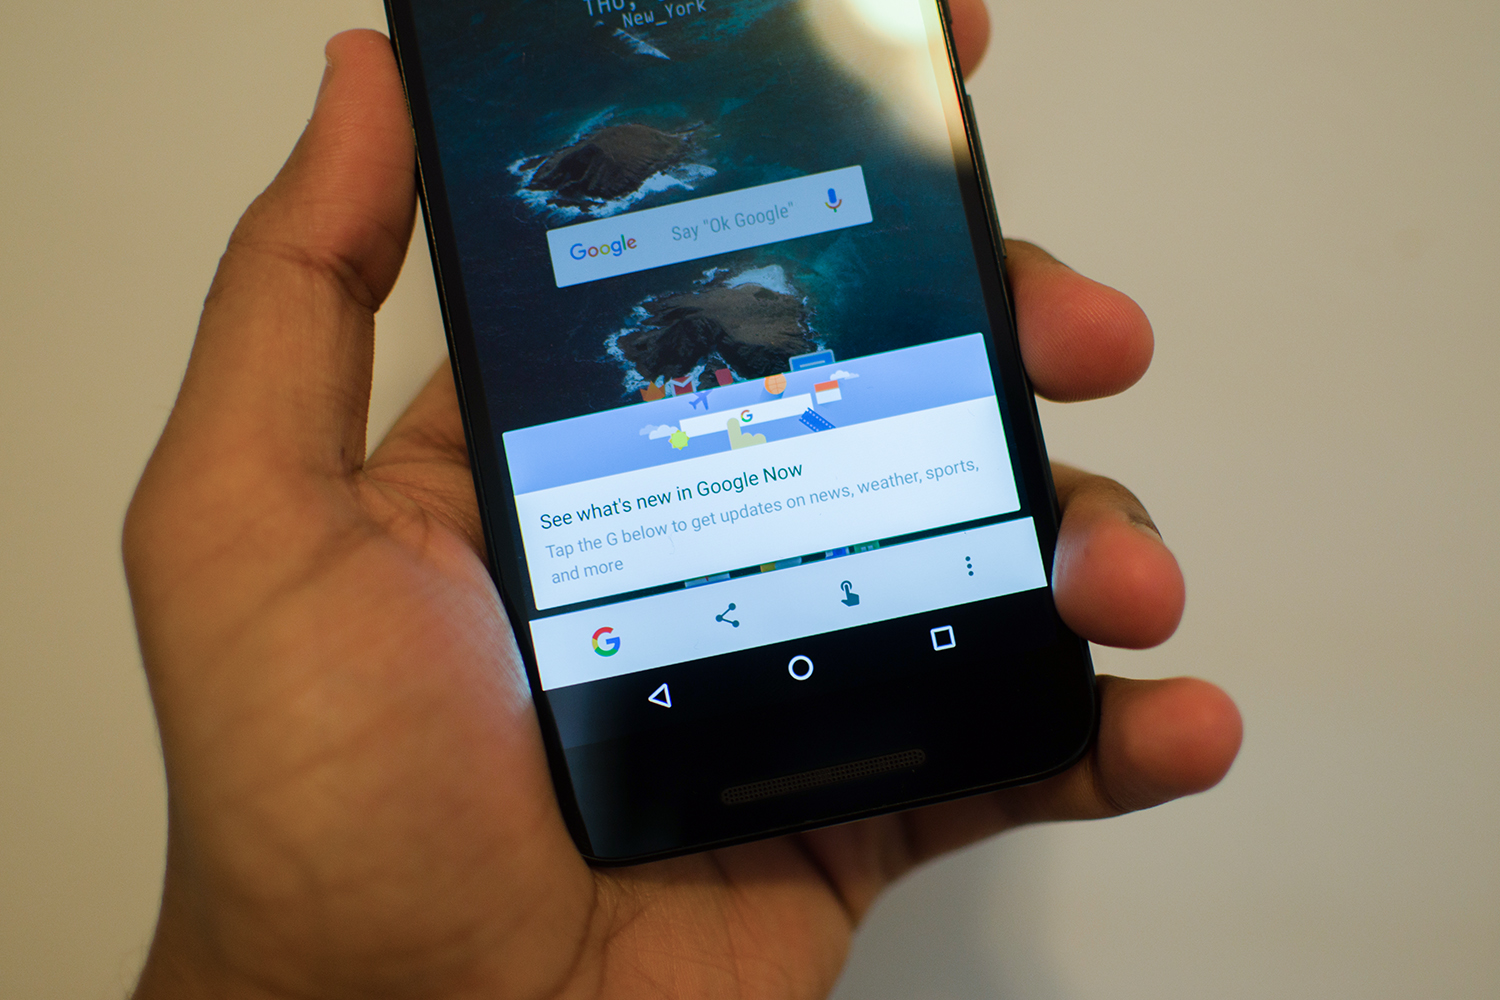 Google Now 'Explore Interests' feature starts appearing for some users